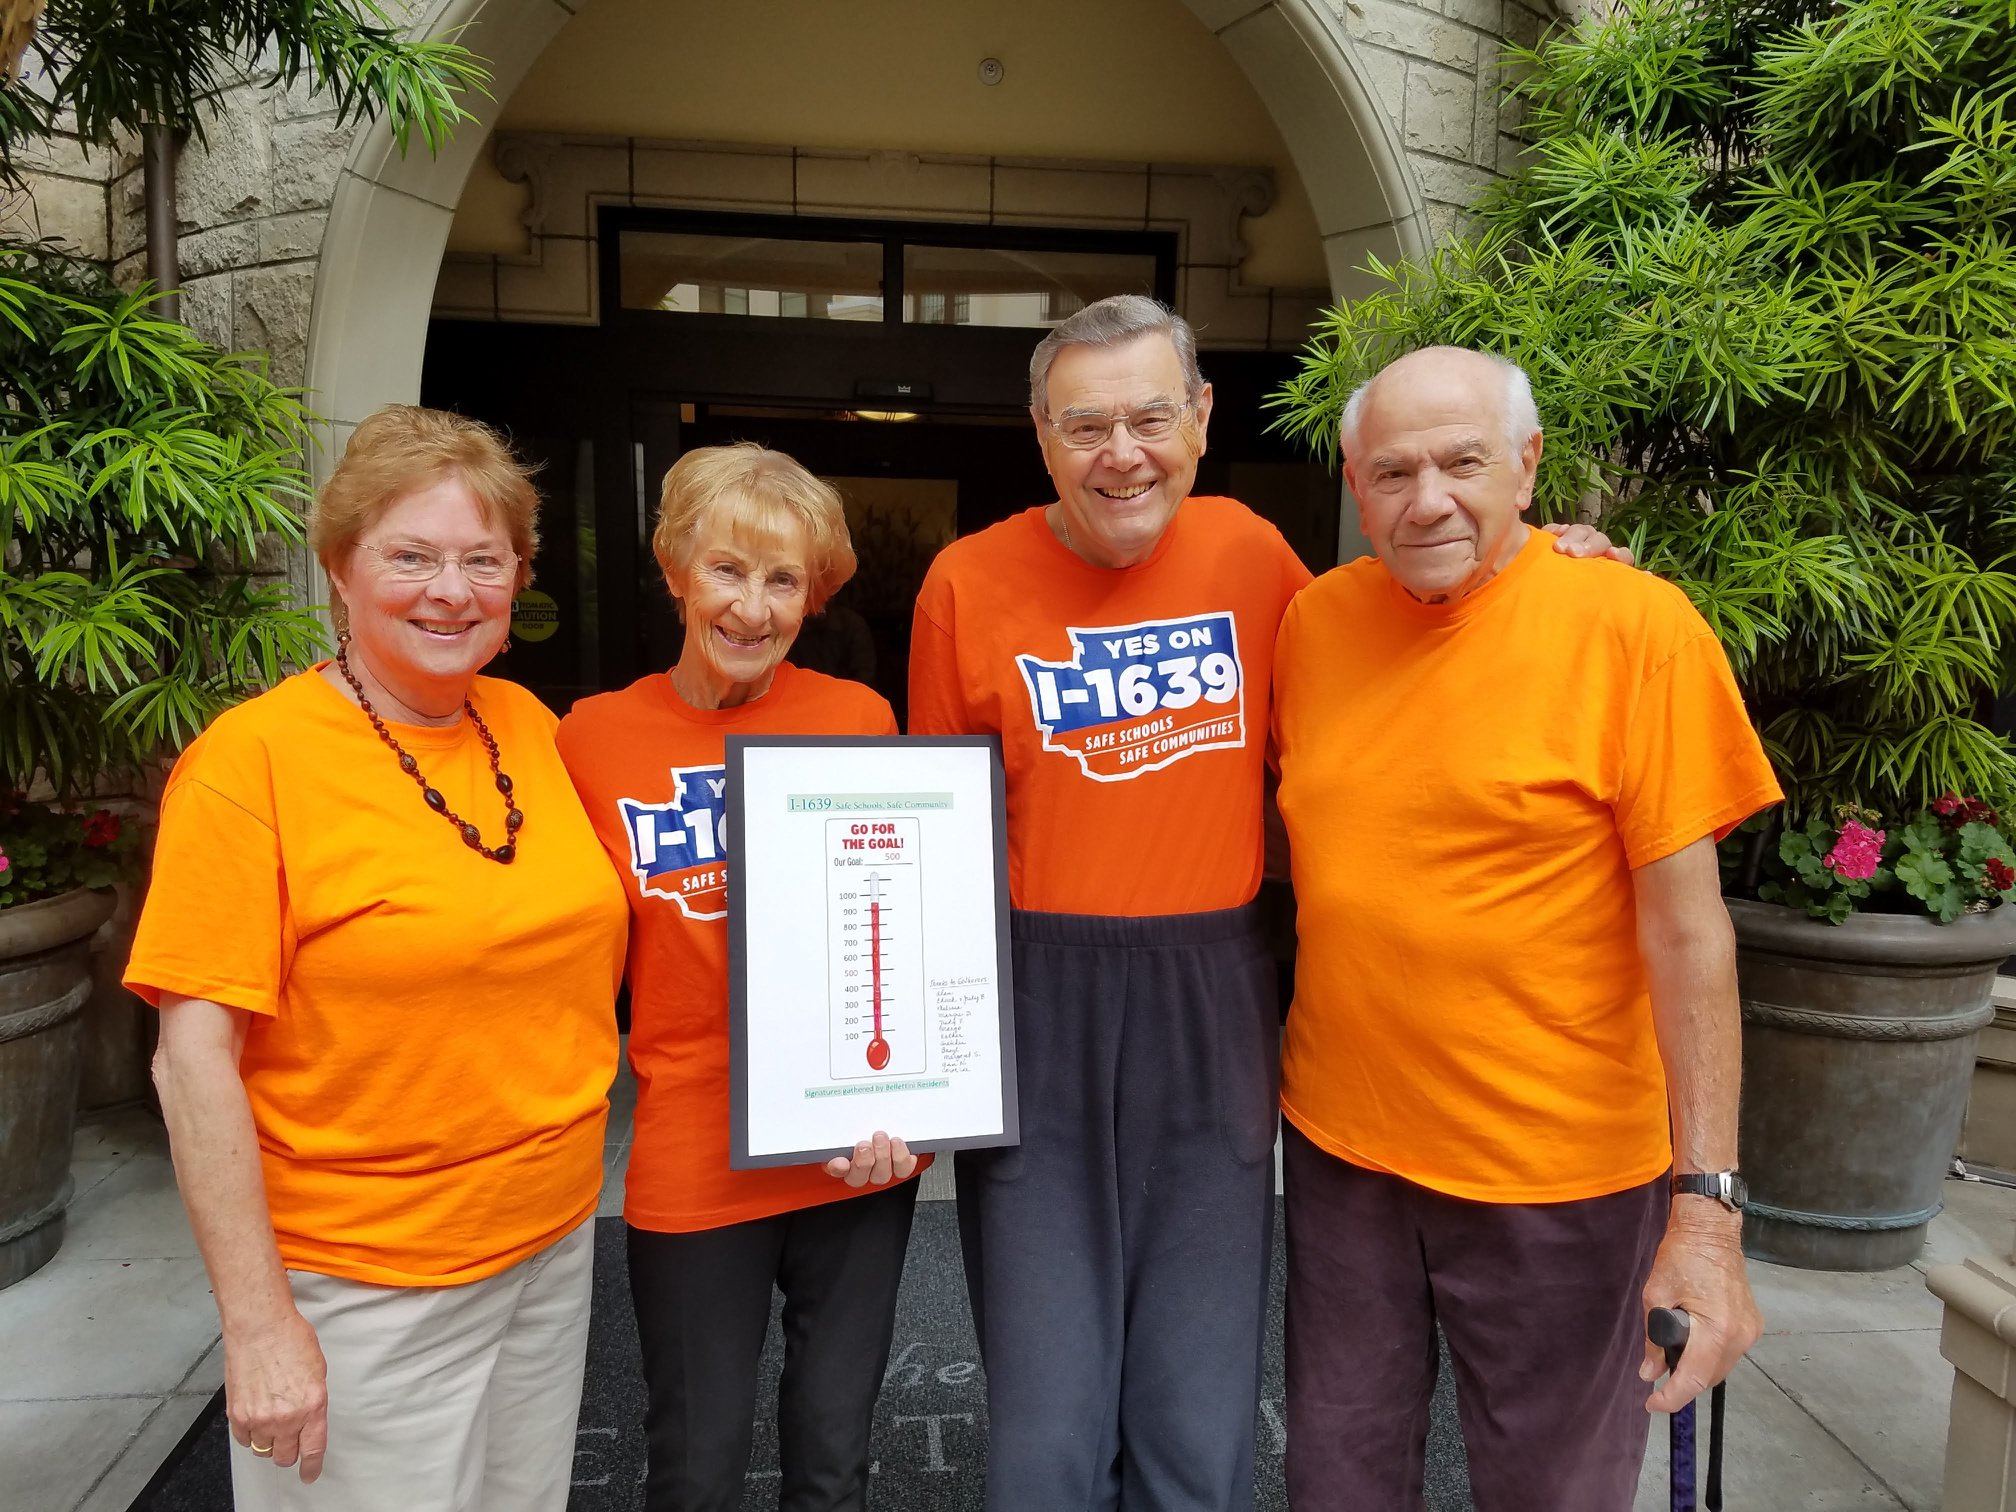 Hats off to Grandparents Against Gun Violence at  The Bellettini  Bellevue Retirement Community for their stellar signature gathering to put Gun Sense Initiative 1639 on the ballot. Their goal was to collect 500 signatures and they more than doubled that. Wow! Thank you for your active citizenship